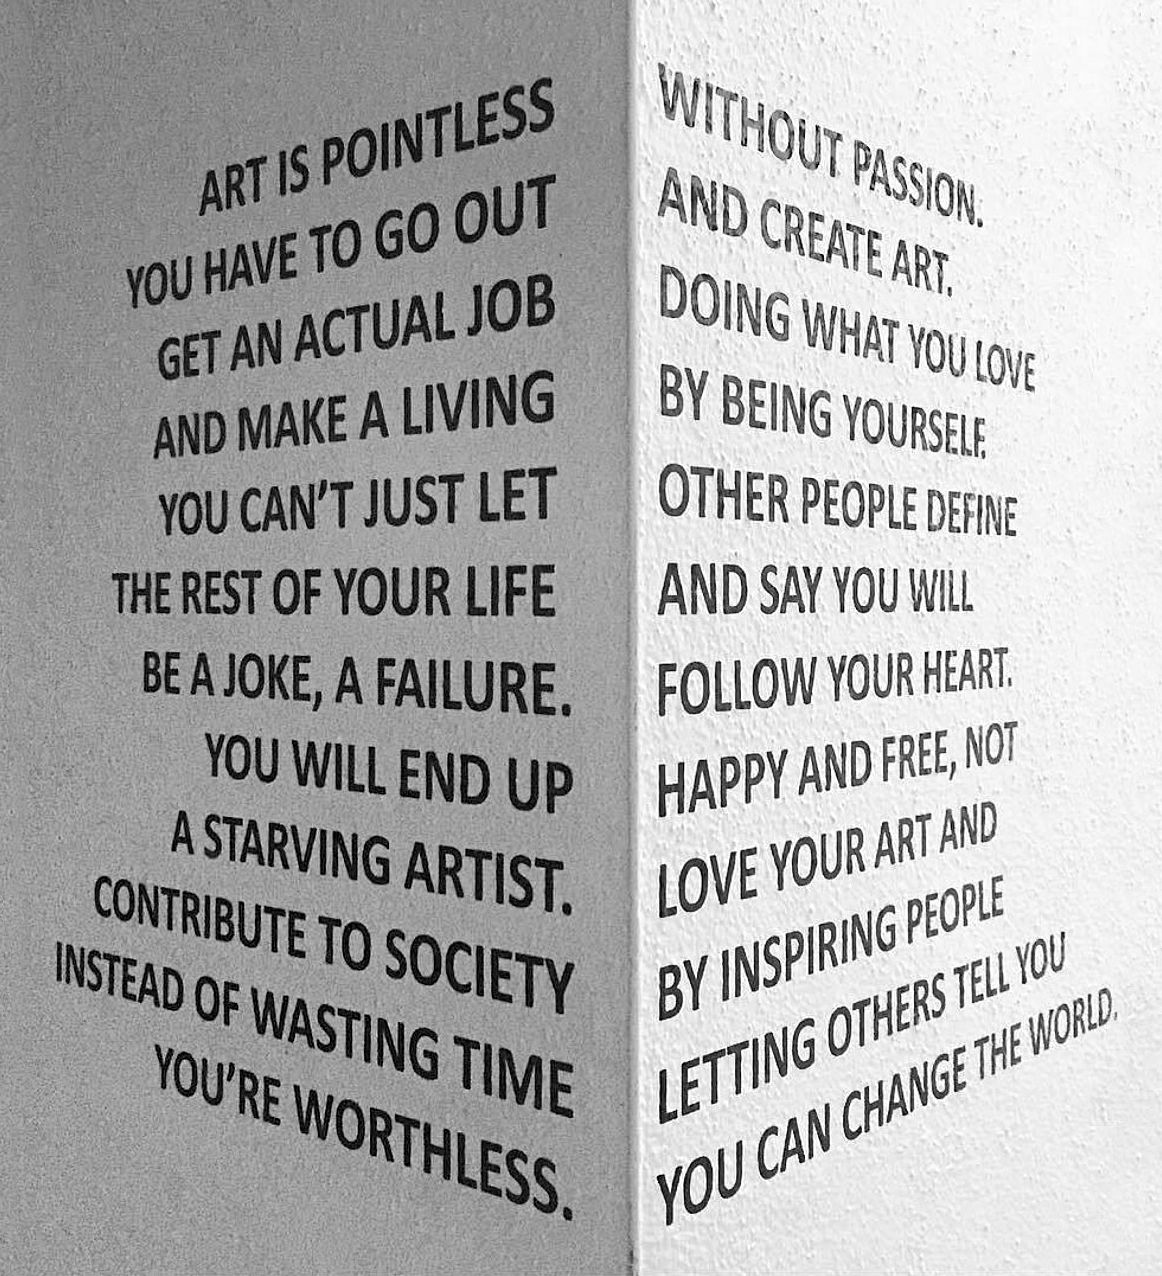 Art is Pointless without Passion, two sides to creating art.